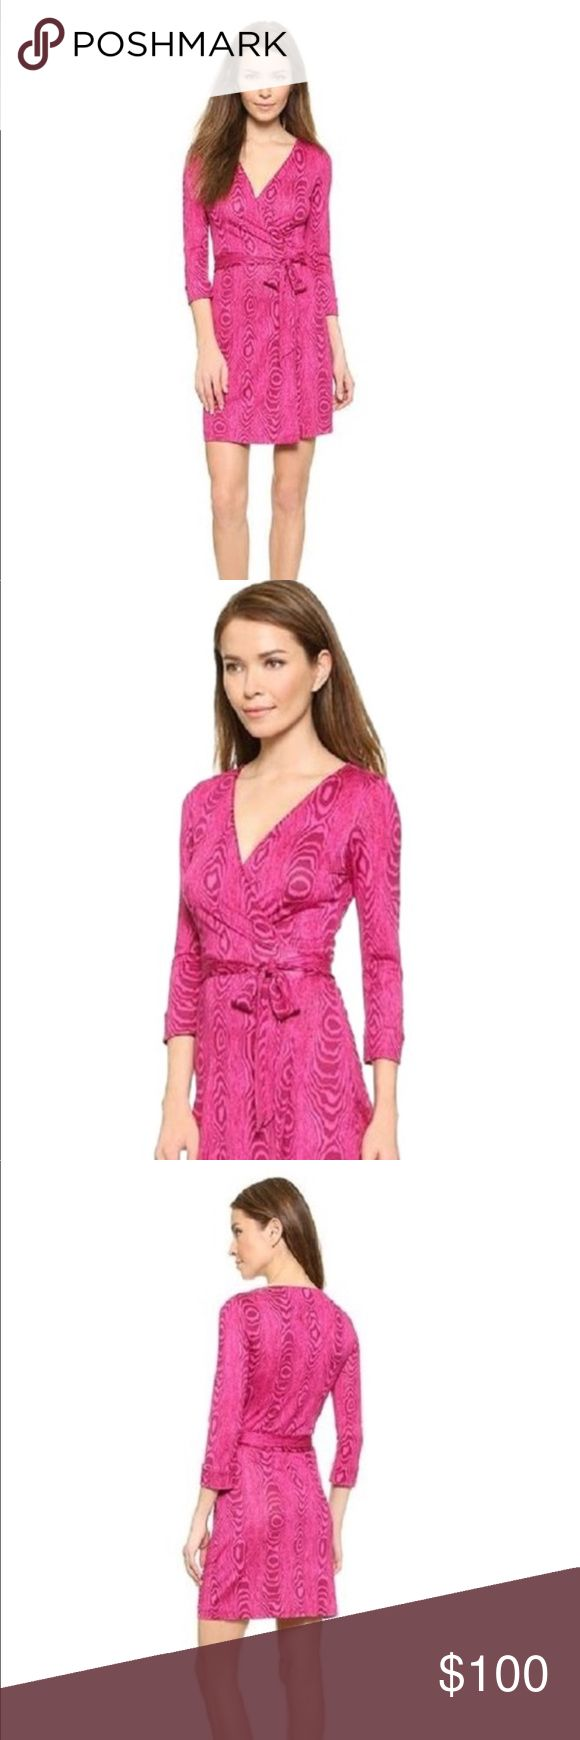 """Pink Dvf """"New Julian Two Mini"""" Wrap Casual Dress A signature DVF wrap dress, cut from silk jersey and updated in a woodgrain print. The crossover bodice forms a flattering V neckline, and a self-tie defines the waist. 3/4 sleeves. Unlined. Fabric: Silk jersey. 100% silk.  Our classic wrap dress in a playful, mini length. The New Julian Two Mini is perfect for a night on the town or a weekend getaway. Cross over wrap with a self-tie belt. 3/4 sleeves. Unlined. Falls to mid thigh.   In New…"""